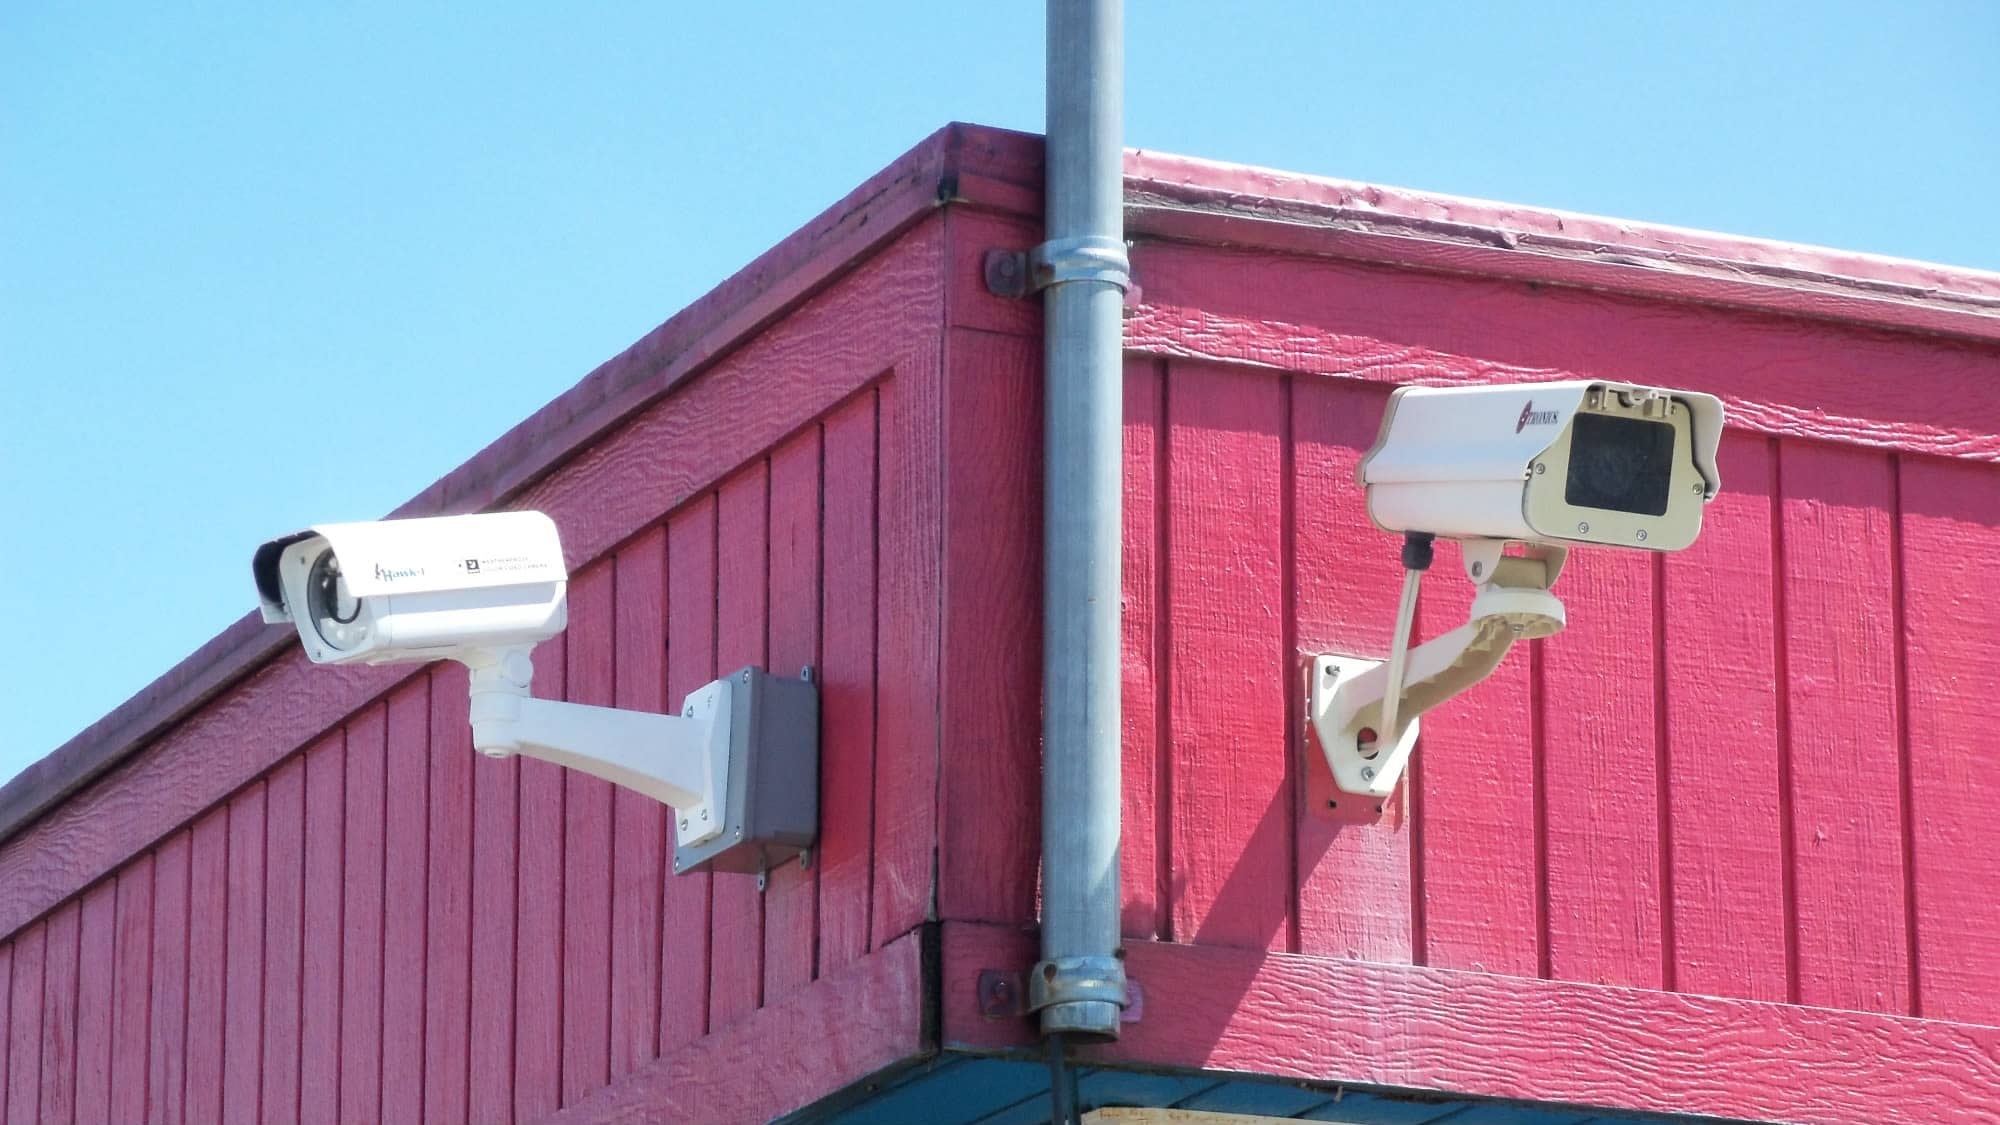 Security camera at Gude Self Storage in Rockville, Maryland